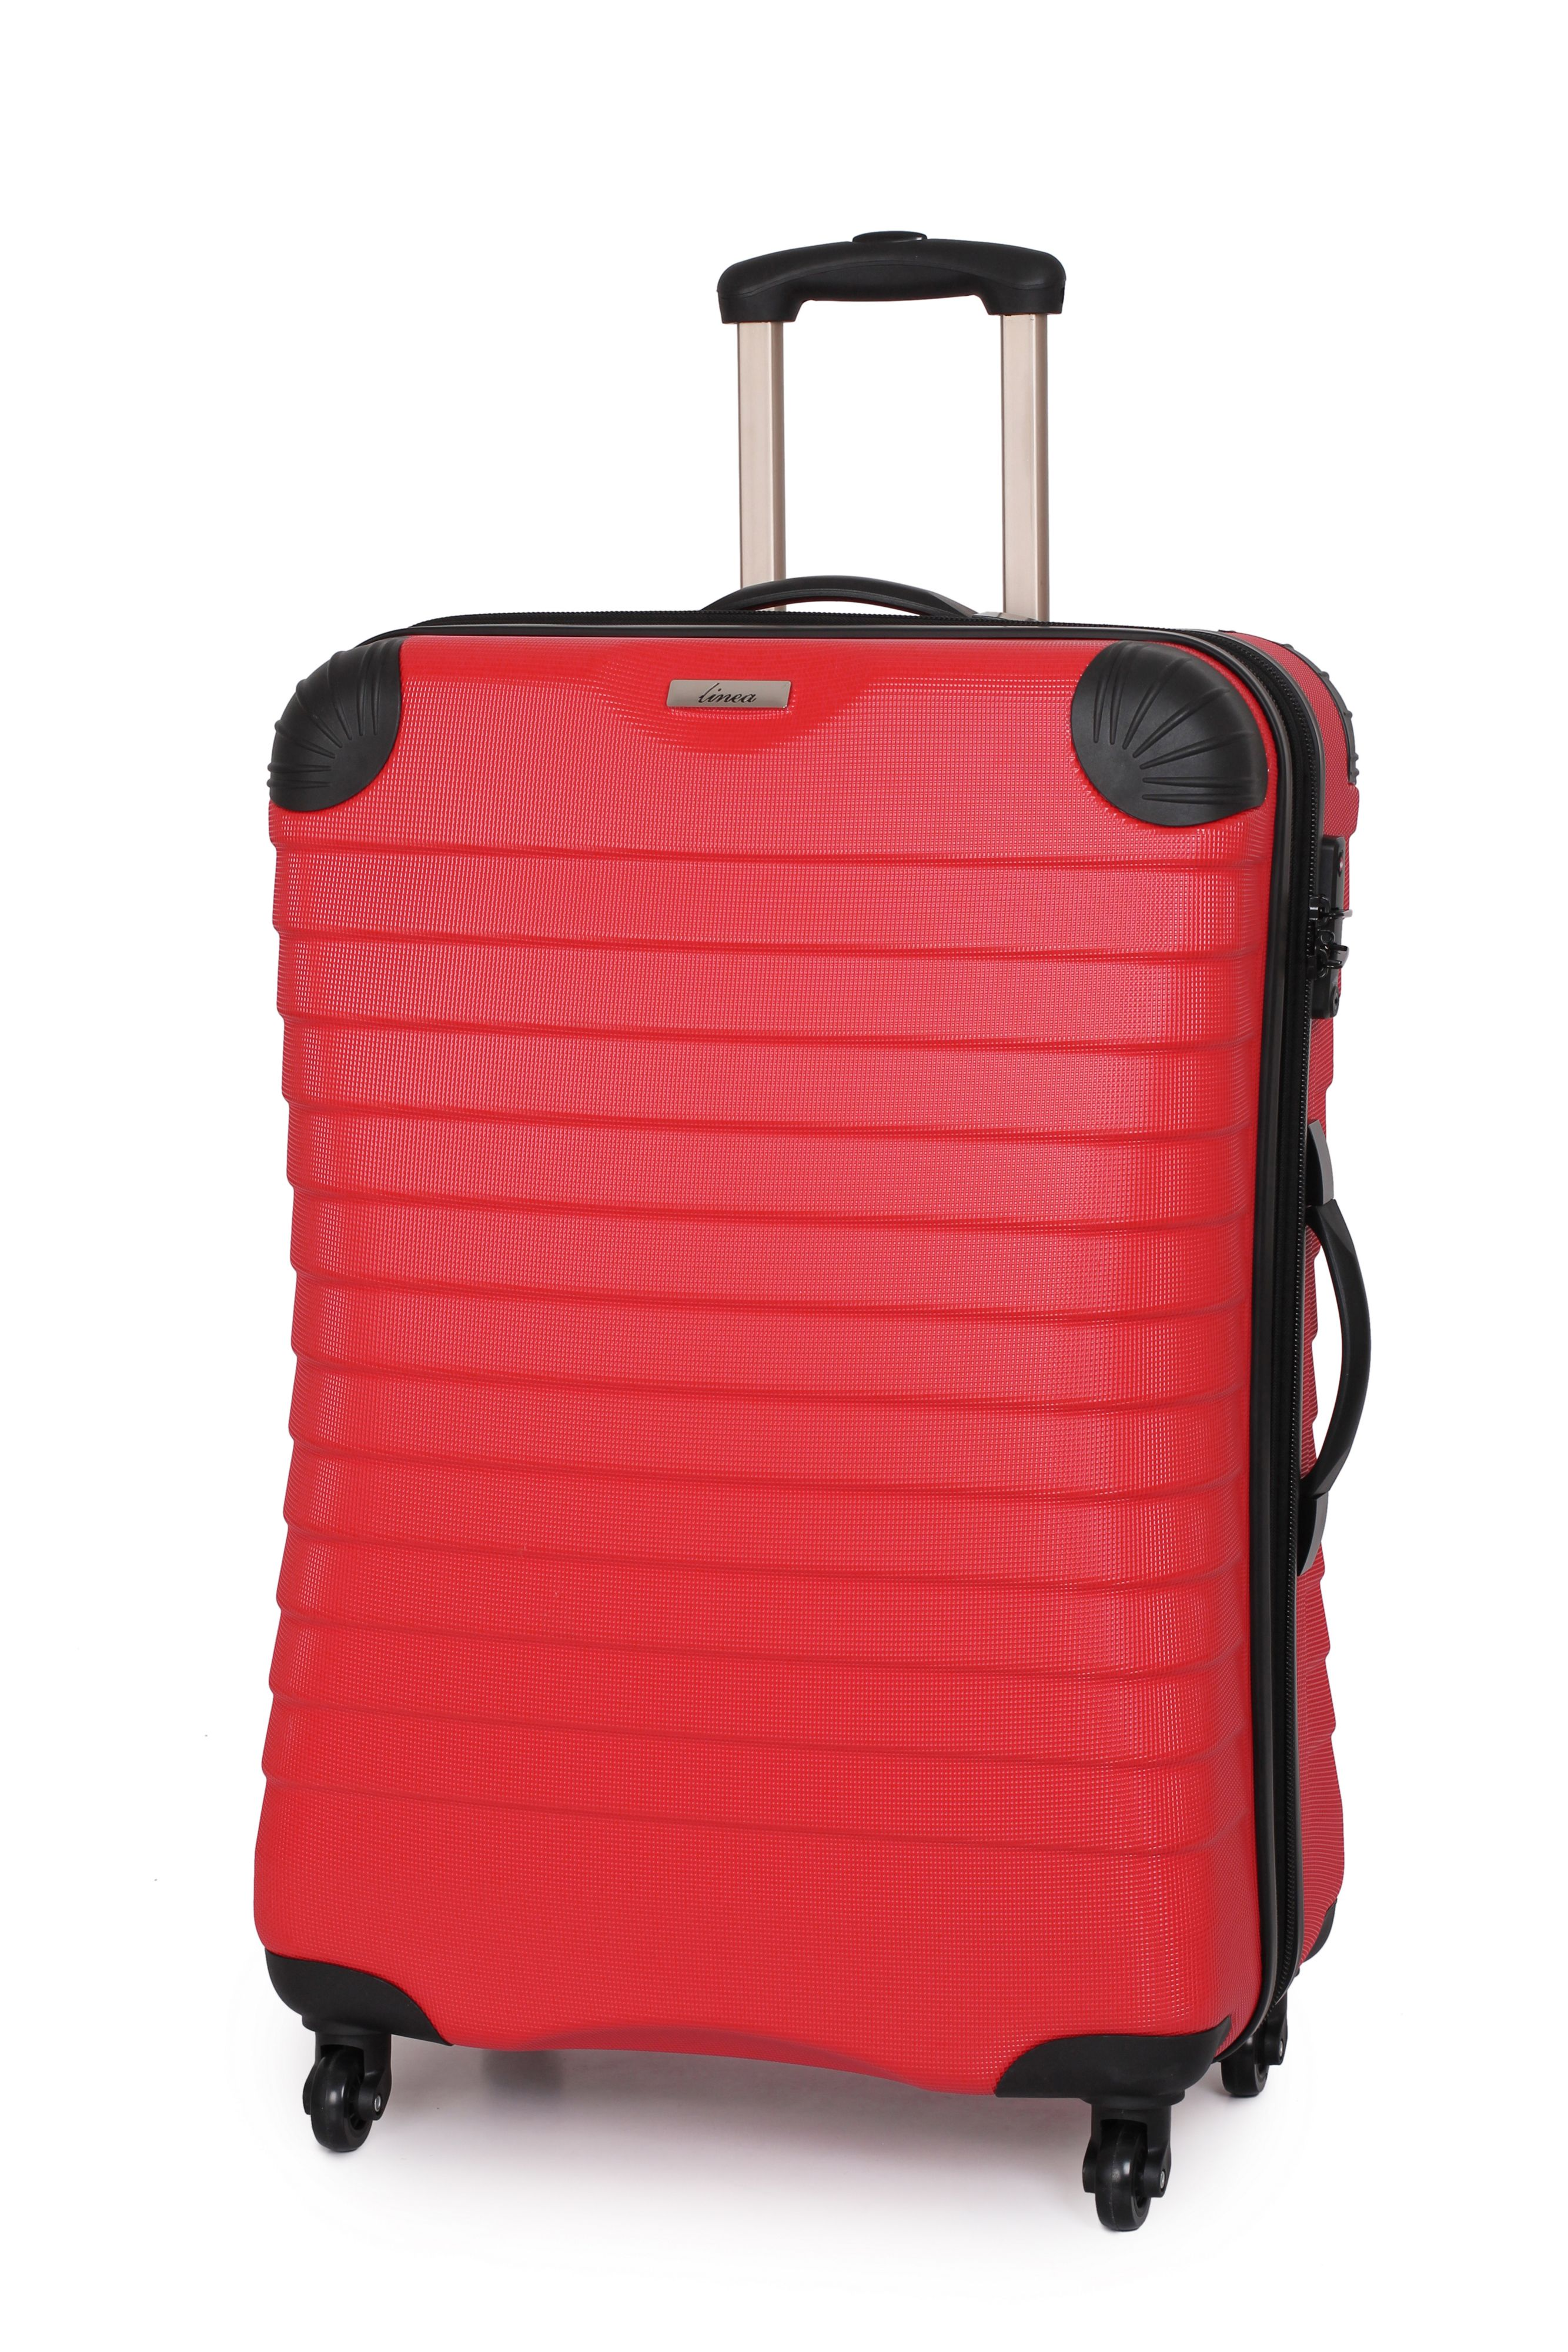 Linea Shell red 4 wheel hard medium suitcase Red